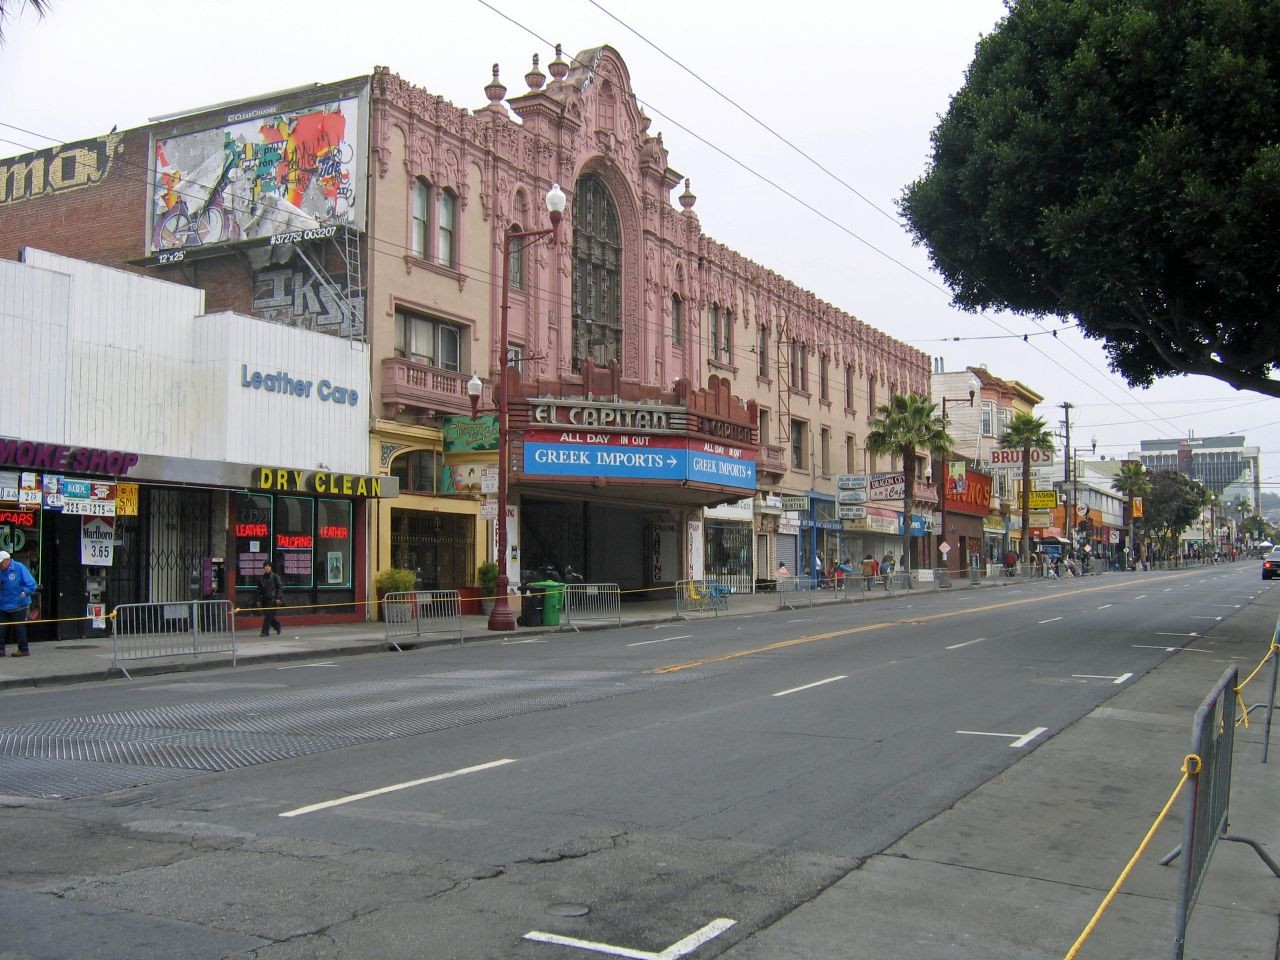 San Francisco's Mission Street. Photo via Wikimedia Commons user Urban